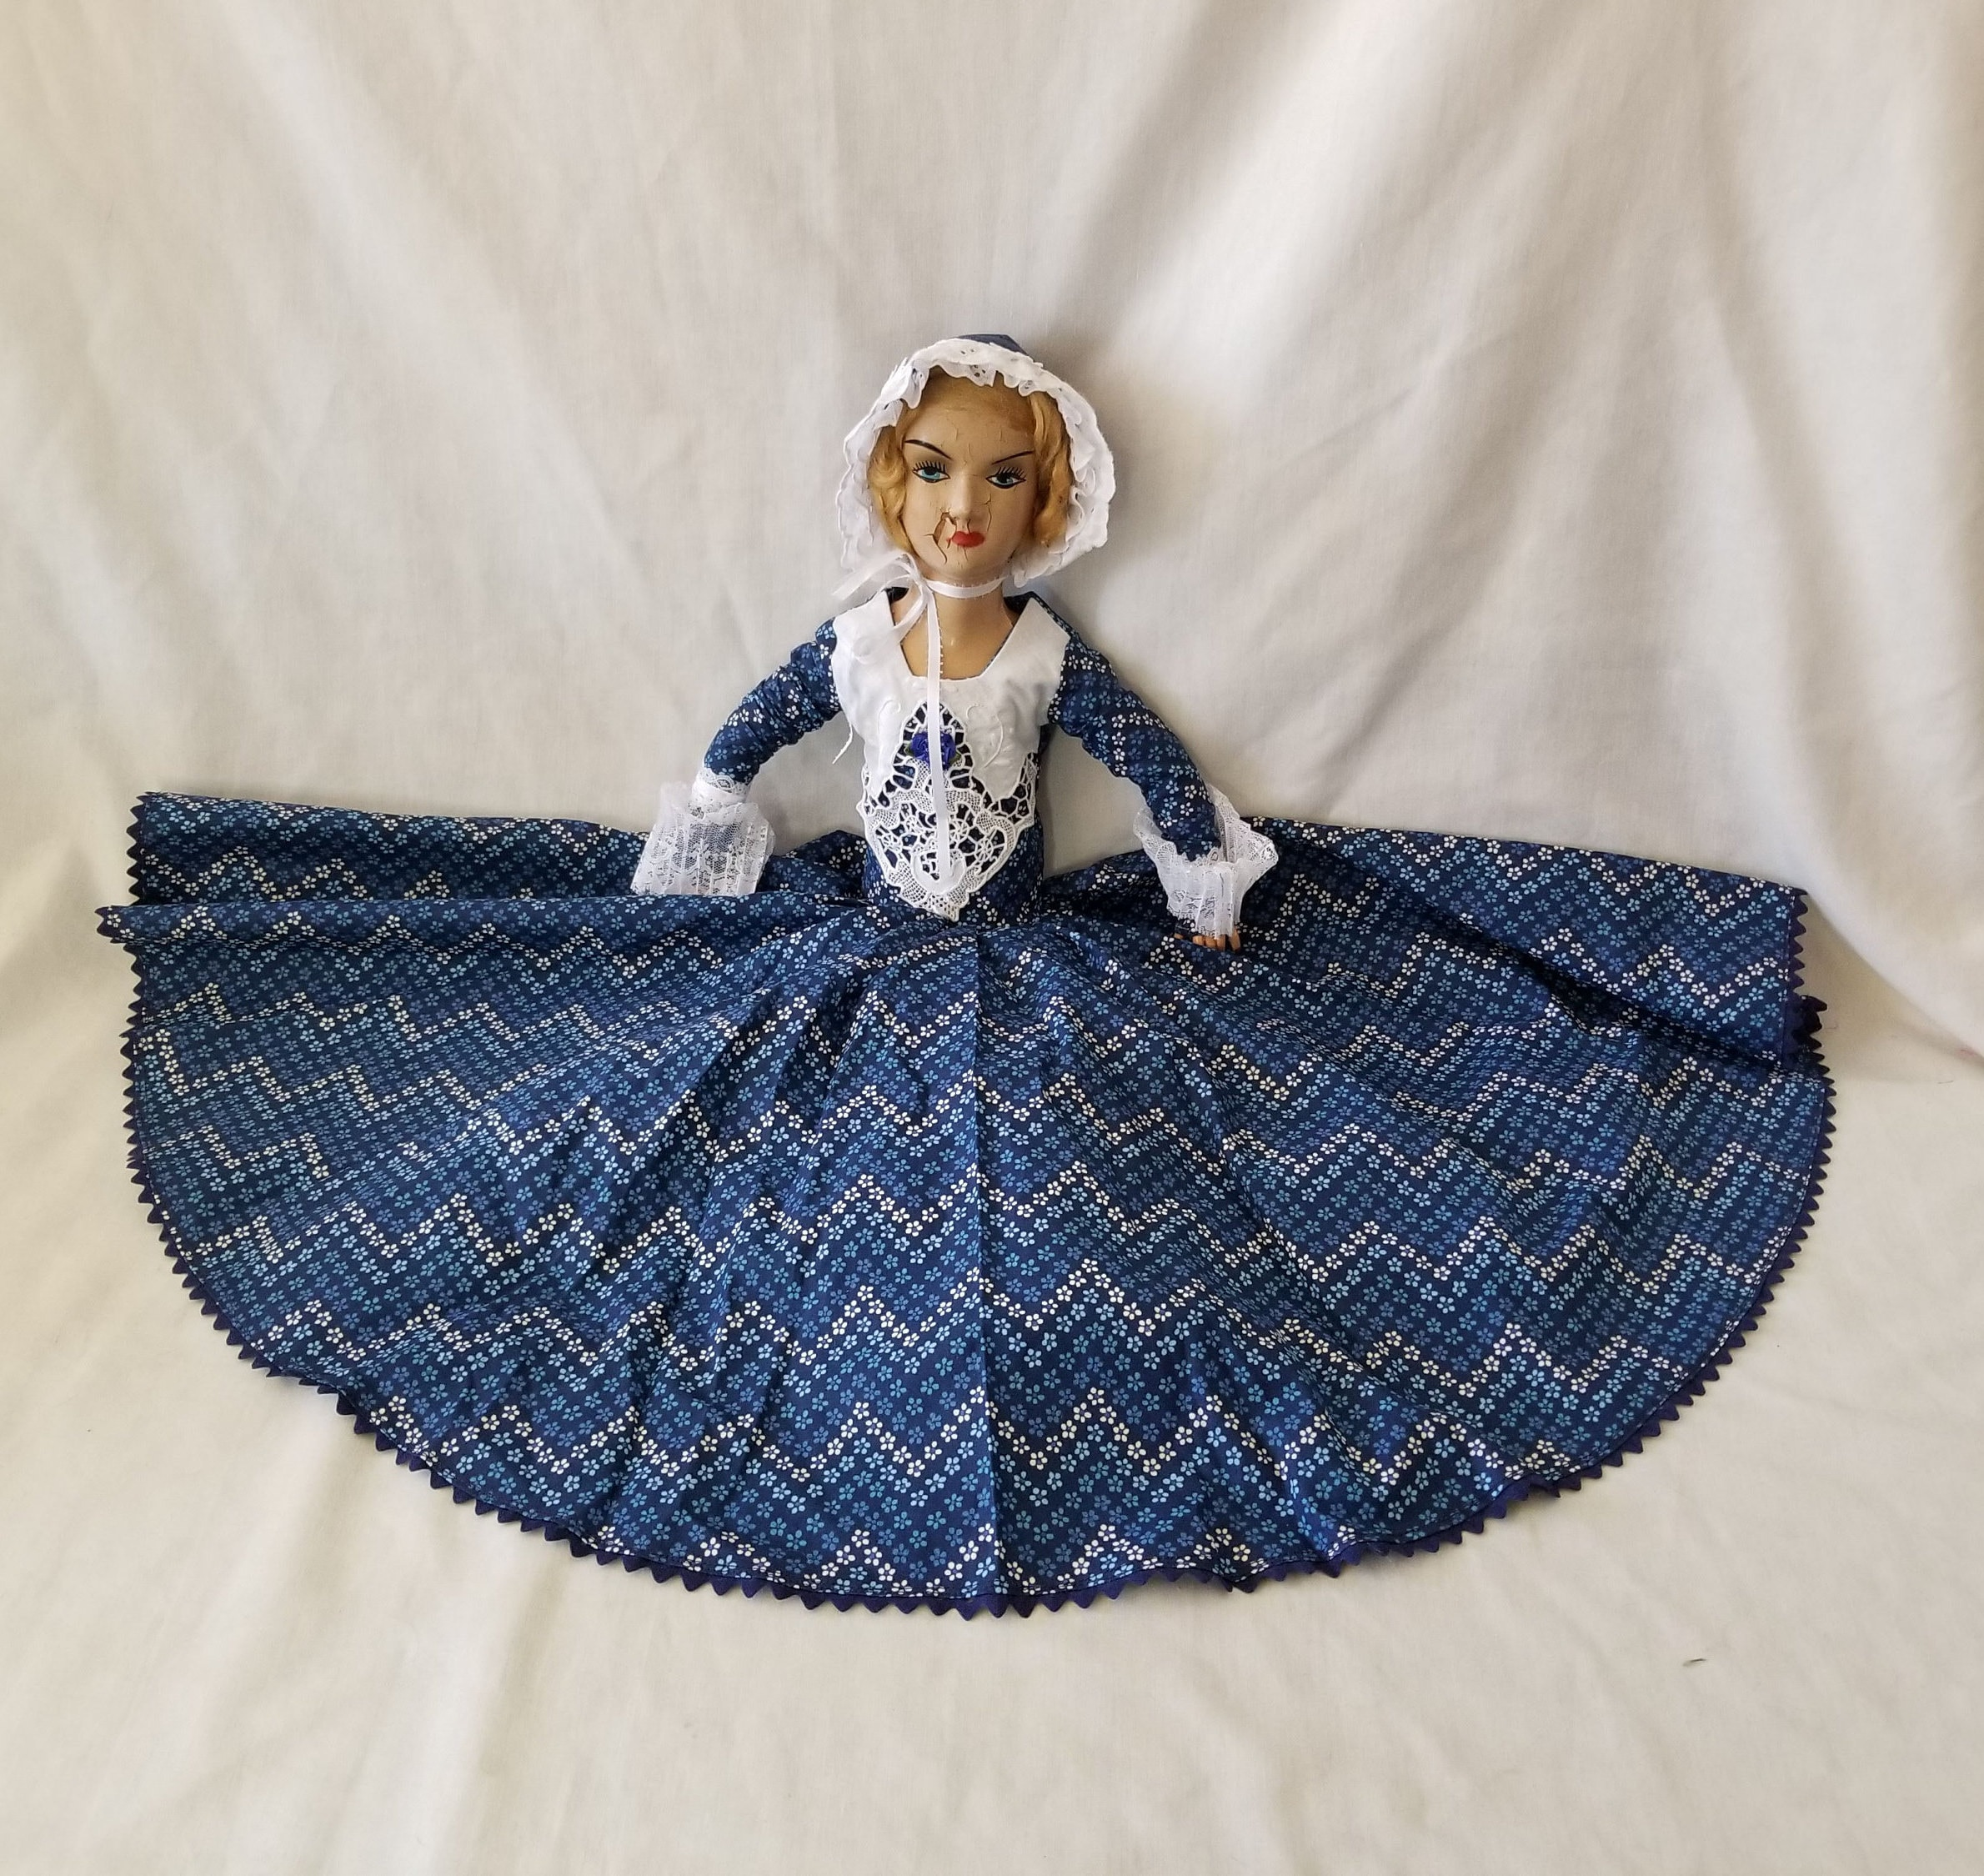 69d6a7246ff5f5 Elaine (read notes) Haunted Doll ~Composition Antique French Boudoir  28